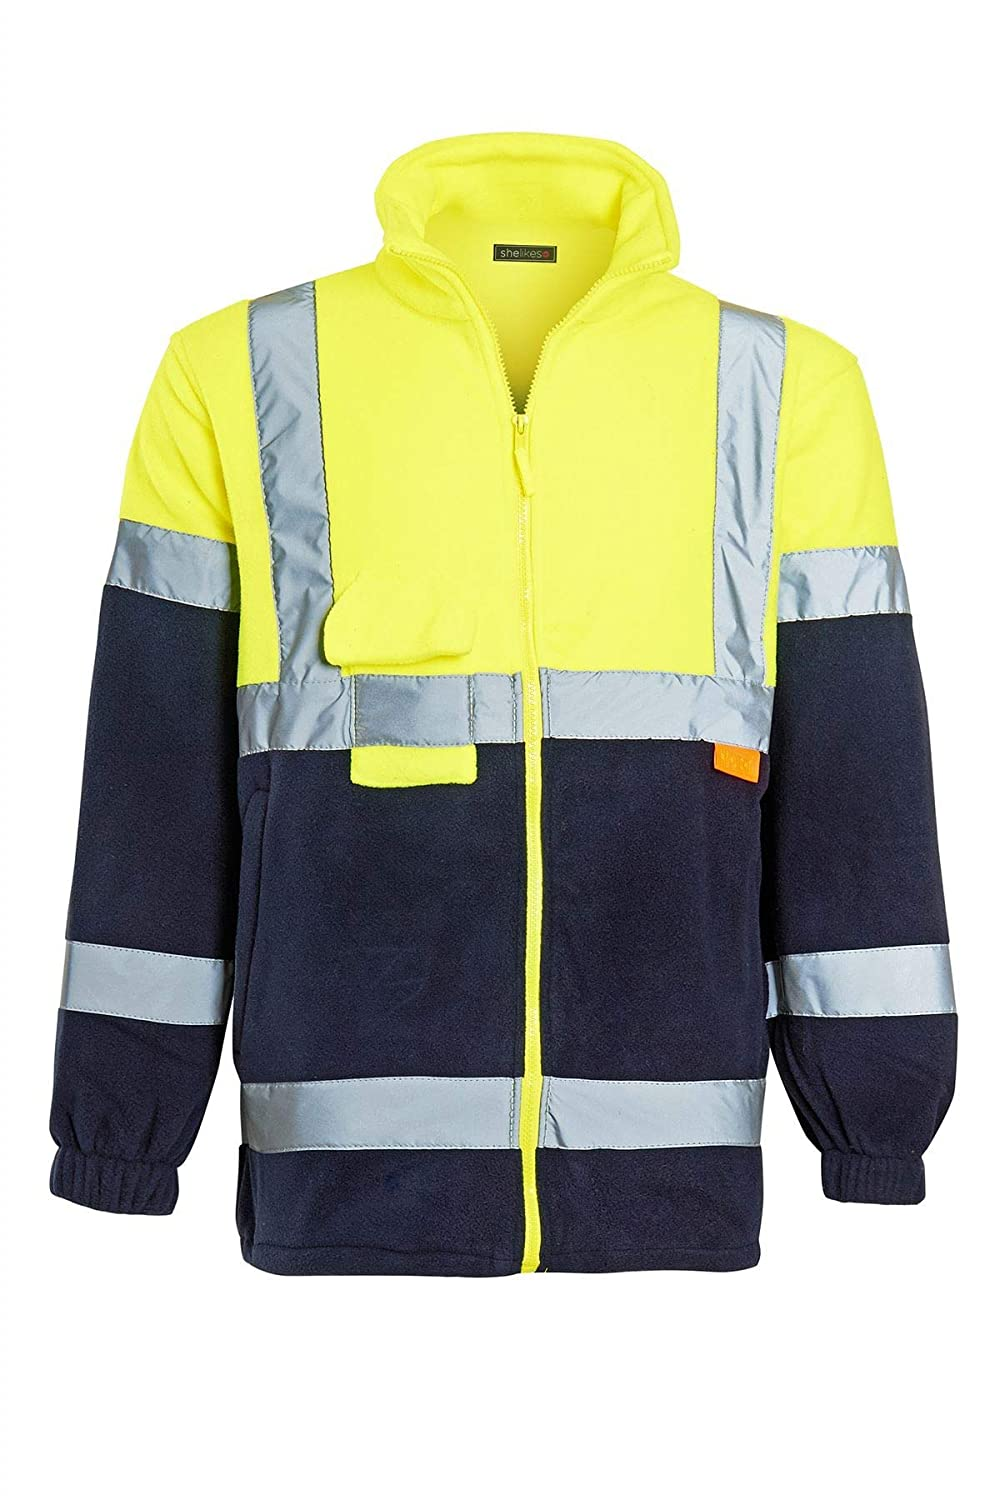 shelikes Mens Hi Vis Fleece Full Zip Warm 2 Side EN471 Reflective Workwear Comfortable Casual Sweat Jacket